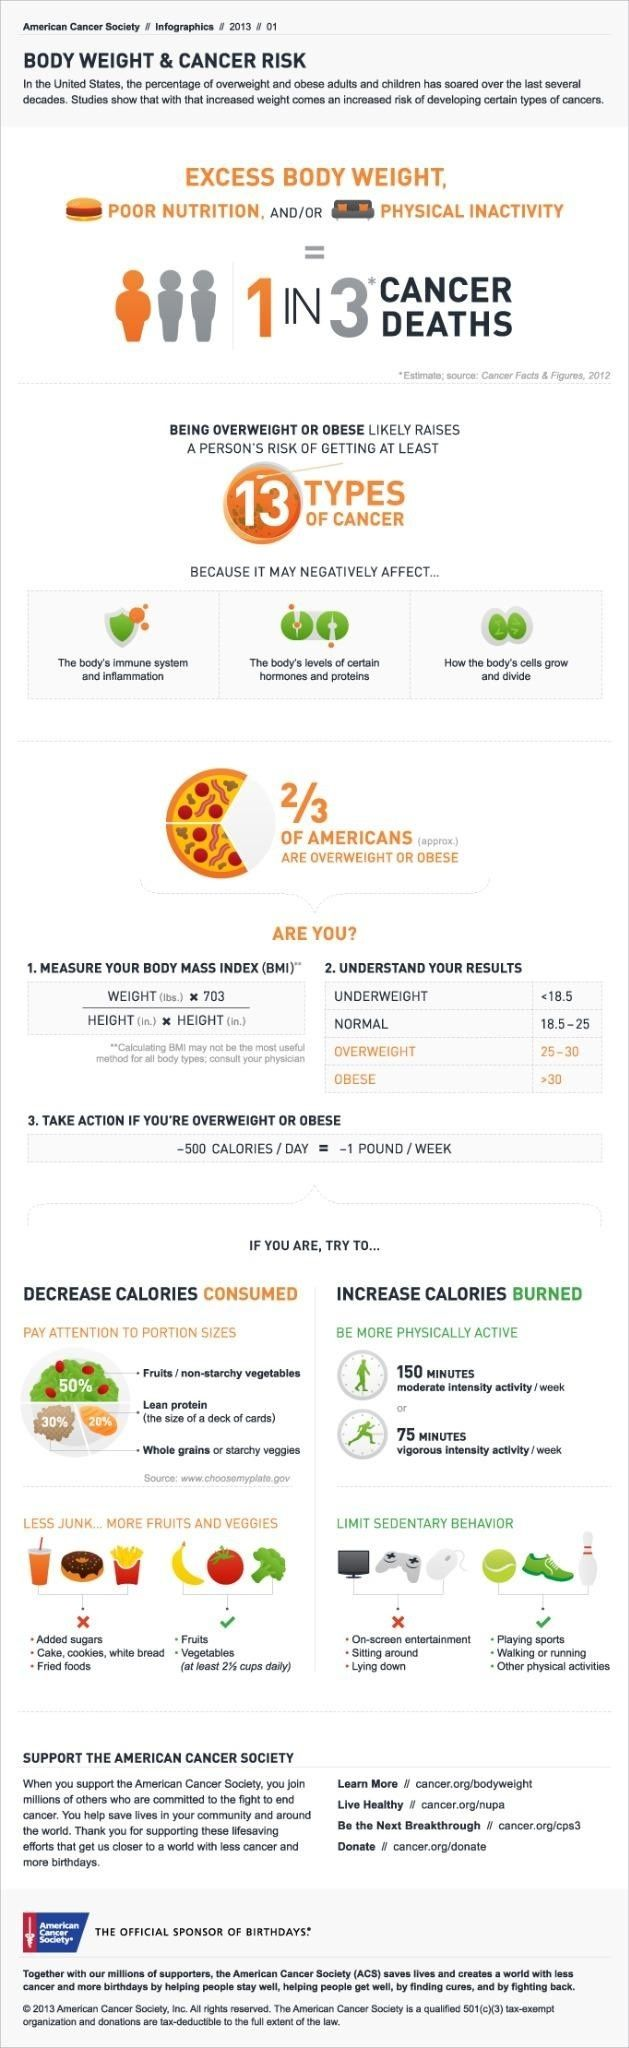 18 best breast cancer infographics images on pinterest breast this infographic highlights growing data suggesting a strong relationship between cancer risk and excess body weight as well as ways to reduce this risk toneelgroepblik Images